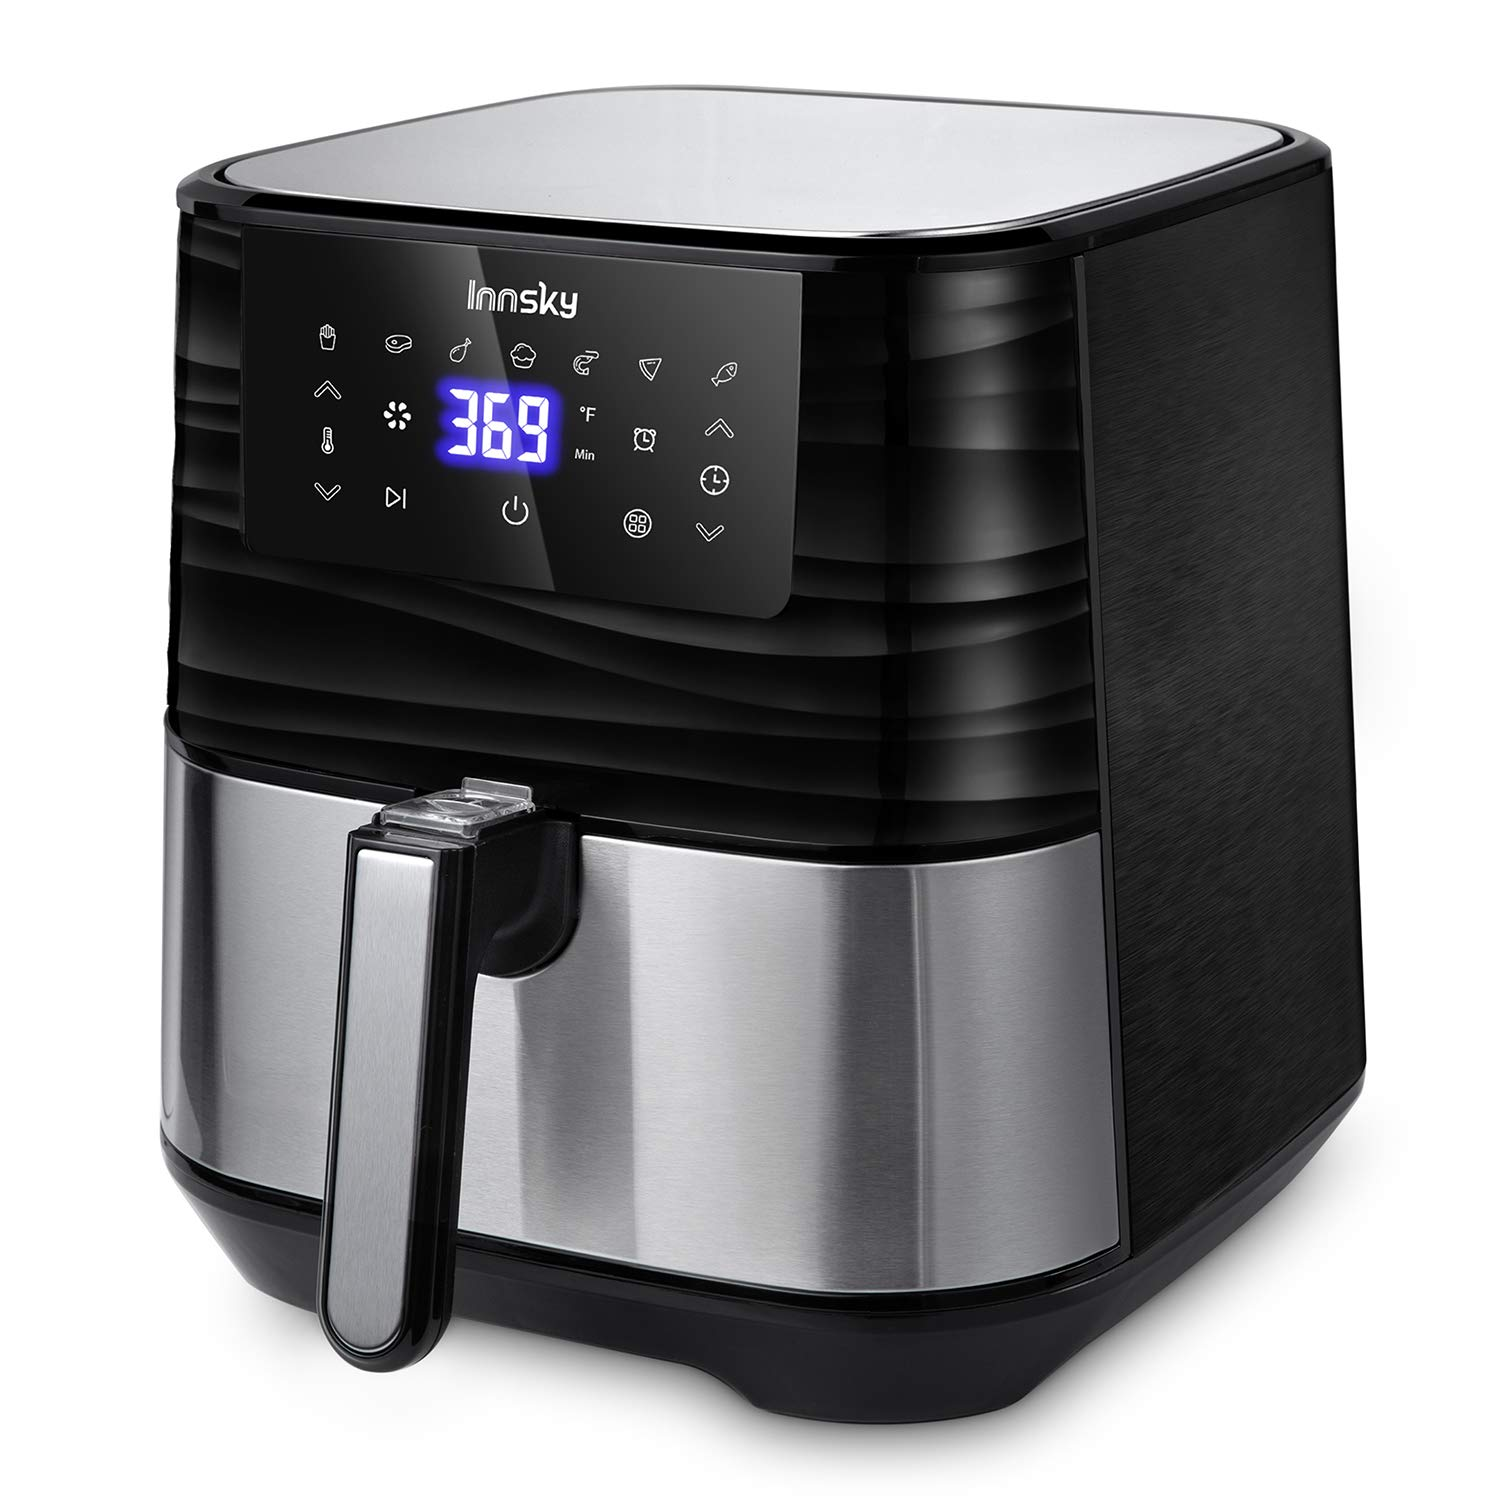 Inn Sky XL Air Fryer